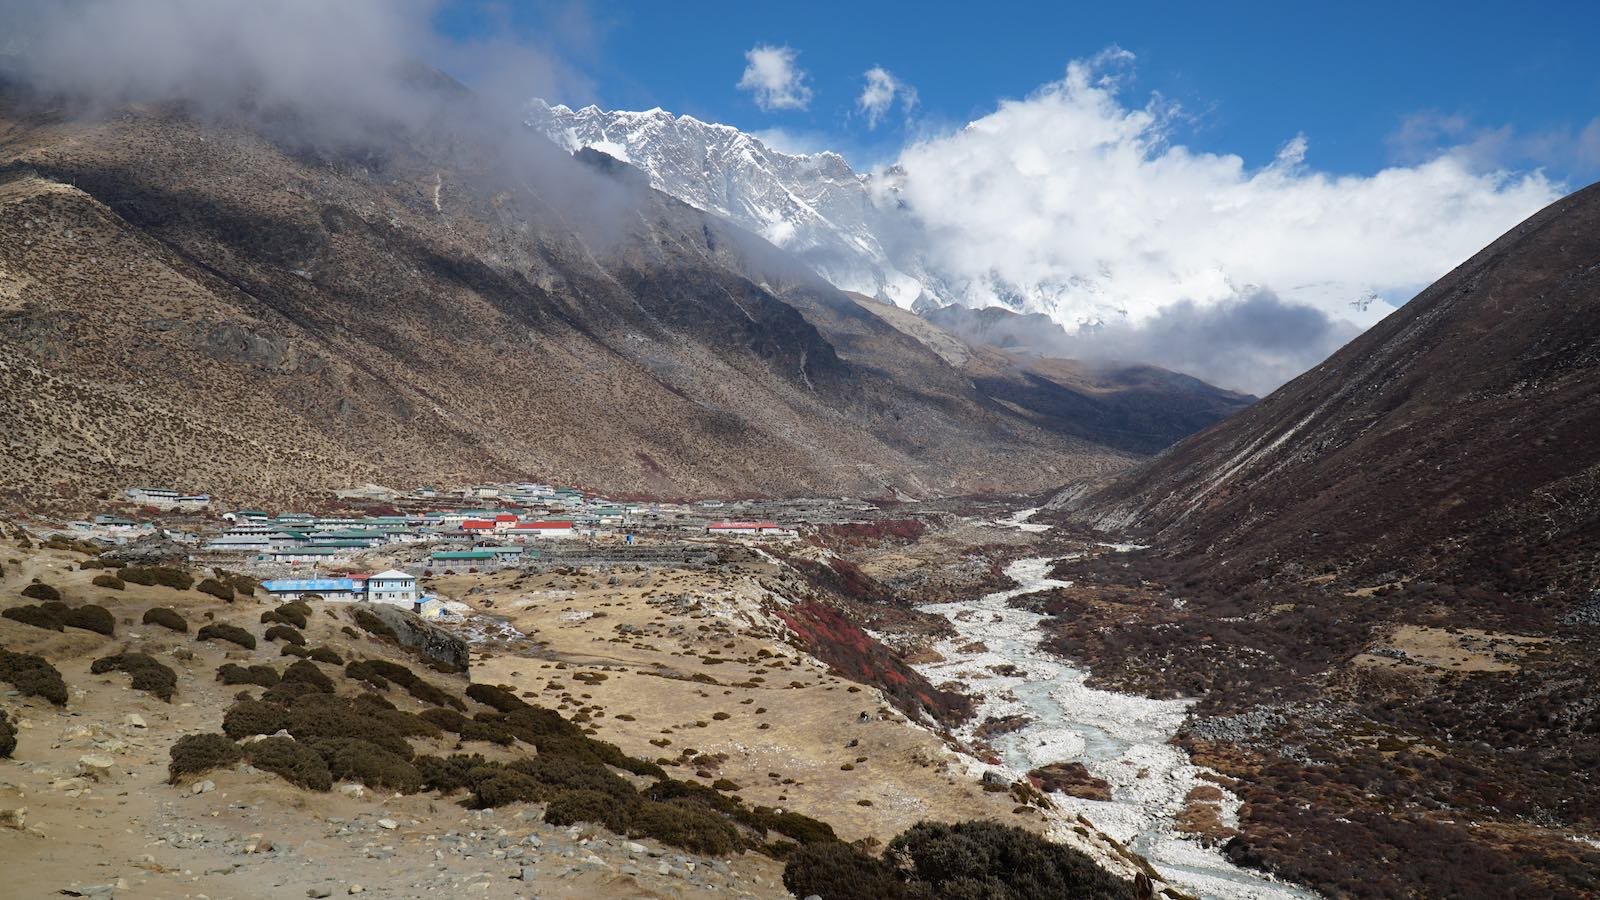 The village of Dingboche